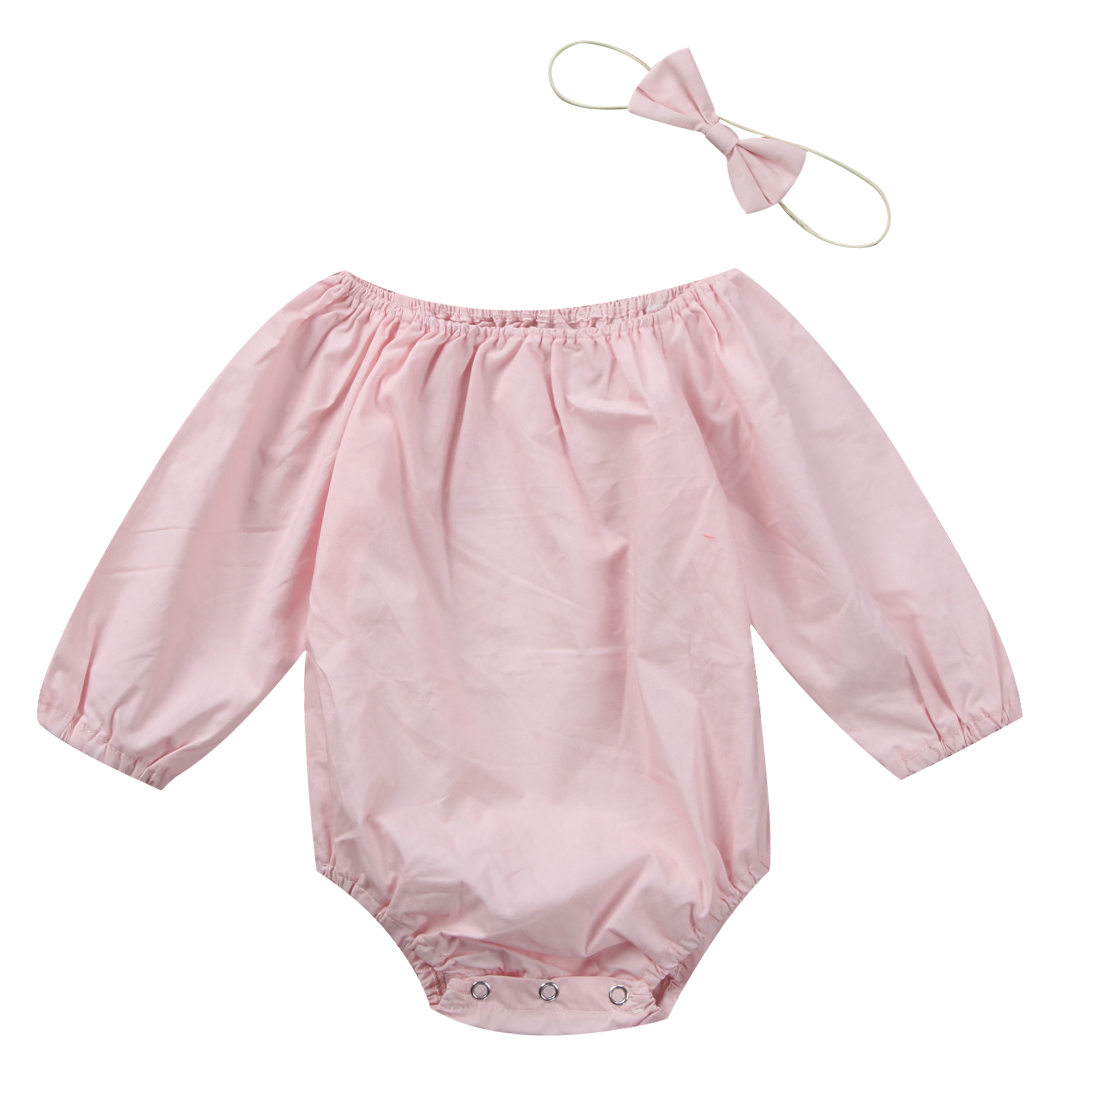 Toddler Baby Girls Long Sleeve Romper Jumpsuit Headband Outfits Clothes Autumn baby set